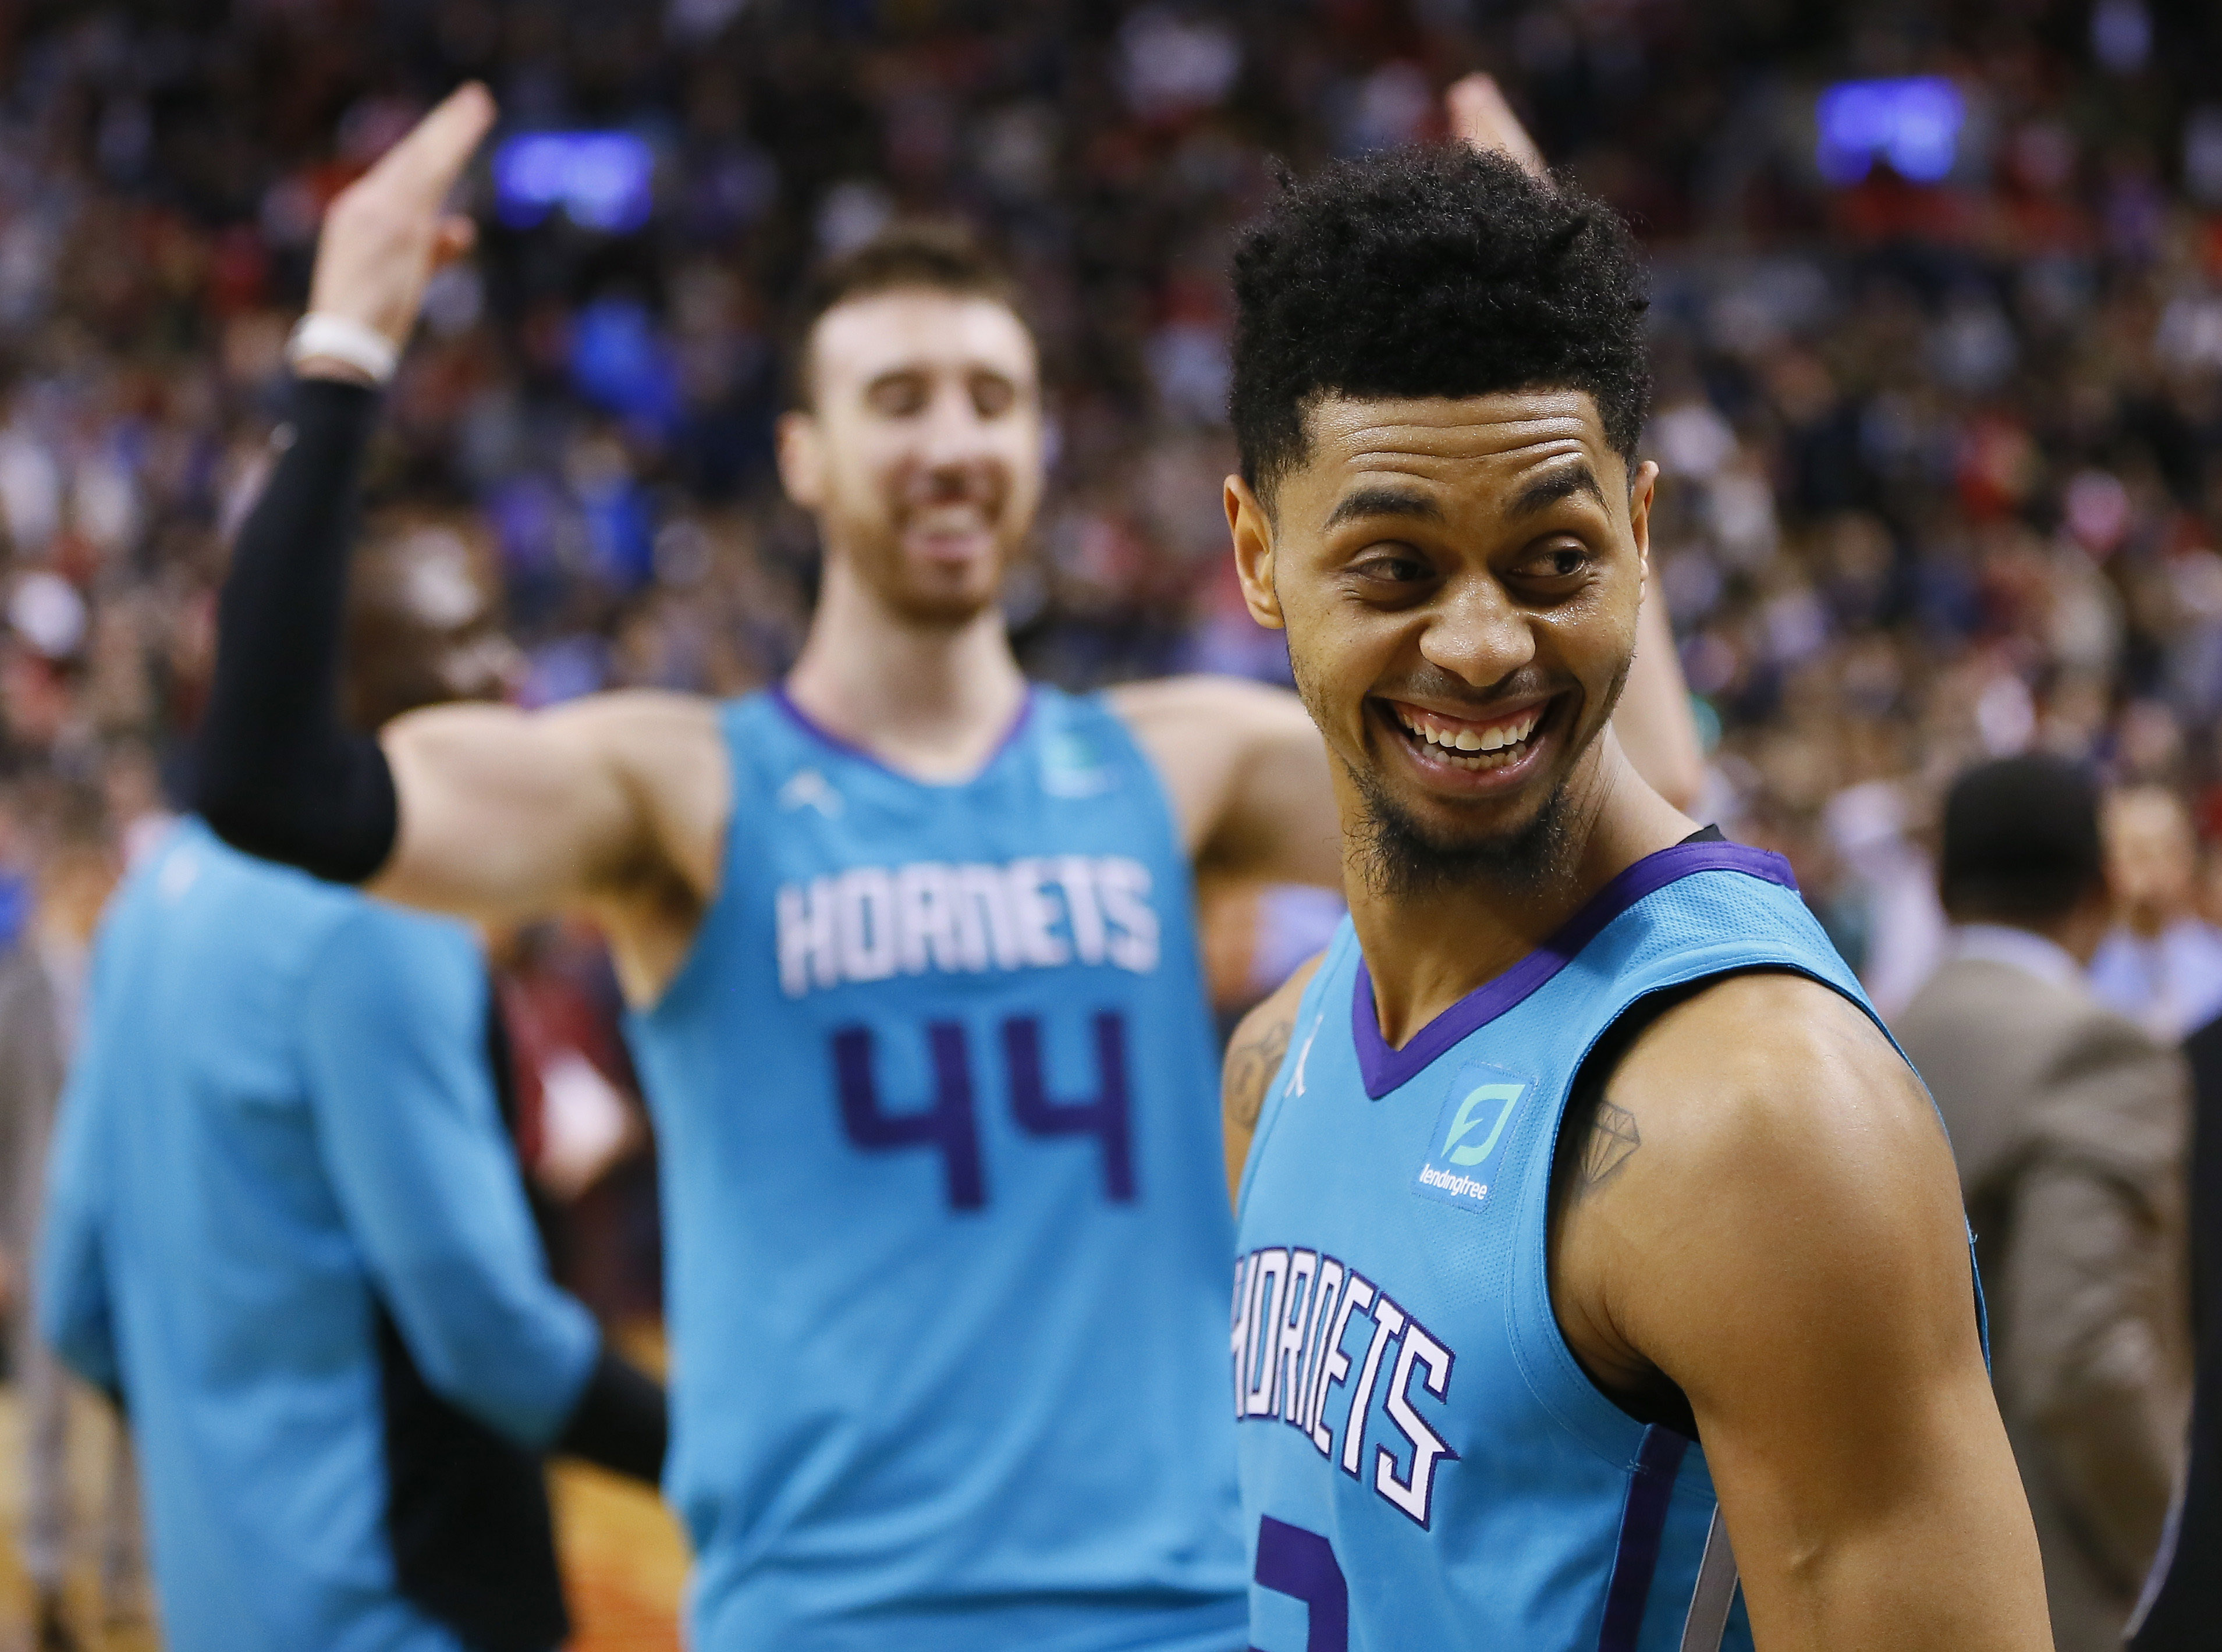 Jeremy Lamb drains insane half-court shot, lifts Hornets over Raptors (Video)